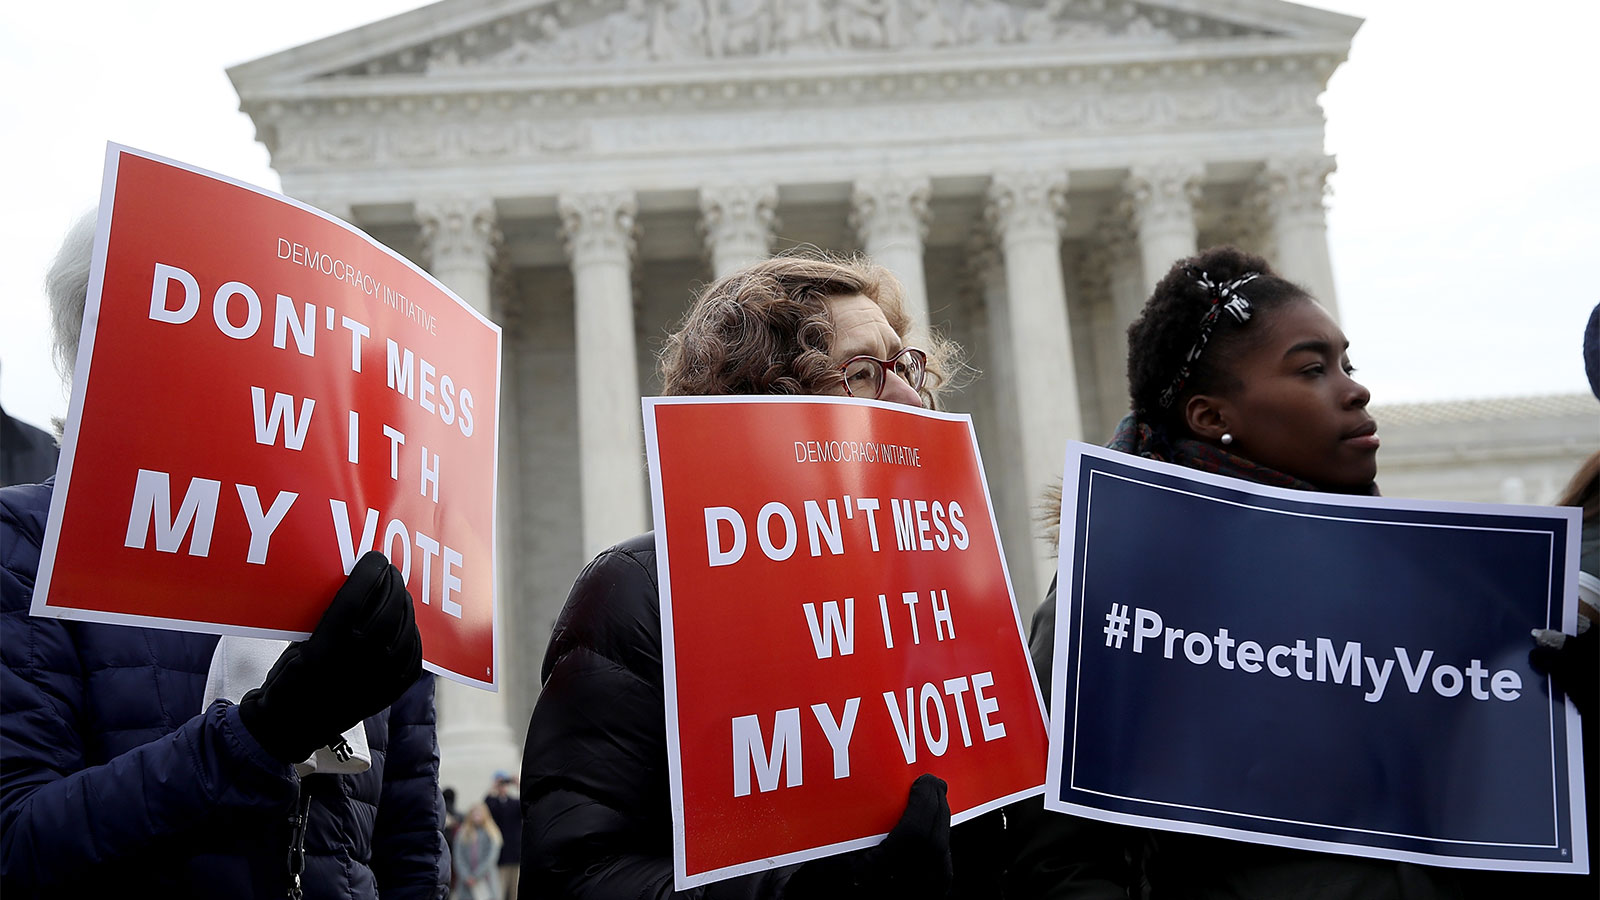 Voting rights activists protgesting in front of the U.S. Supreme Court building in Washington, DC